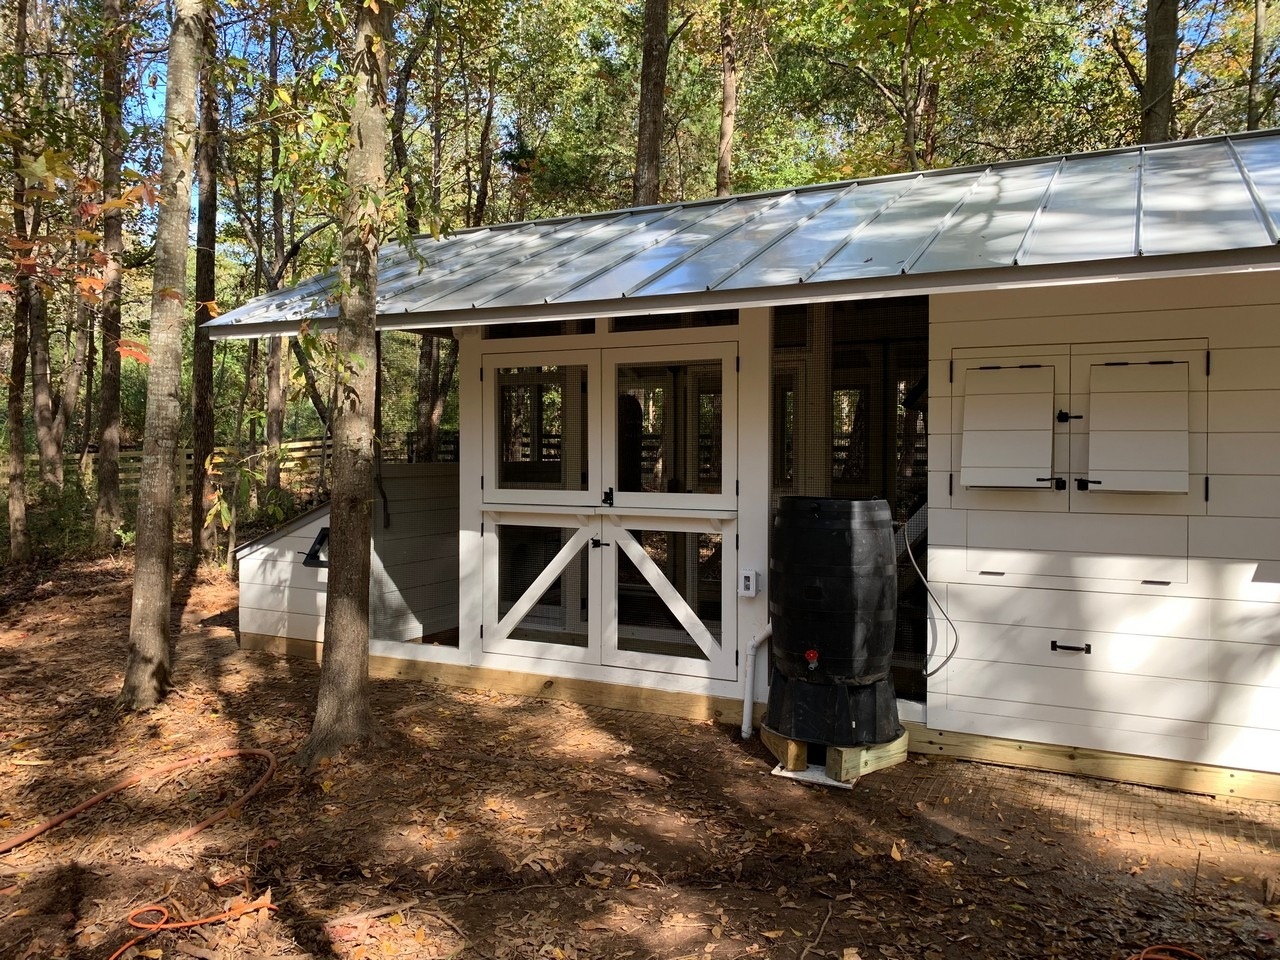 Modern Farmhouse custom chicken coop and duck house in South Carolina